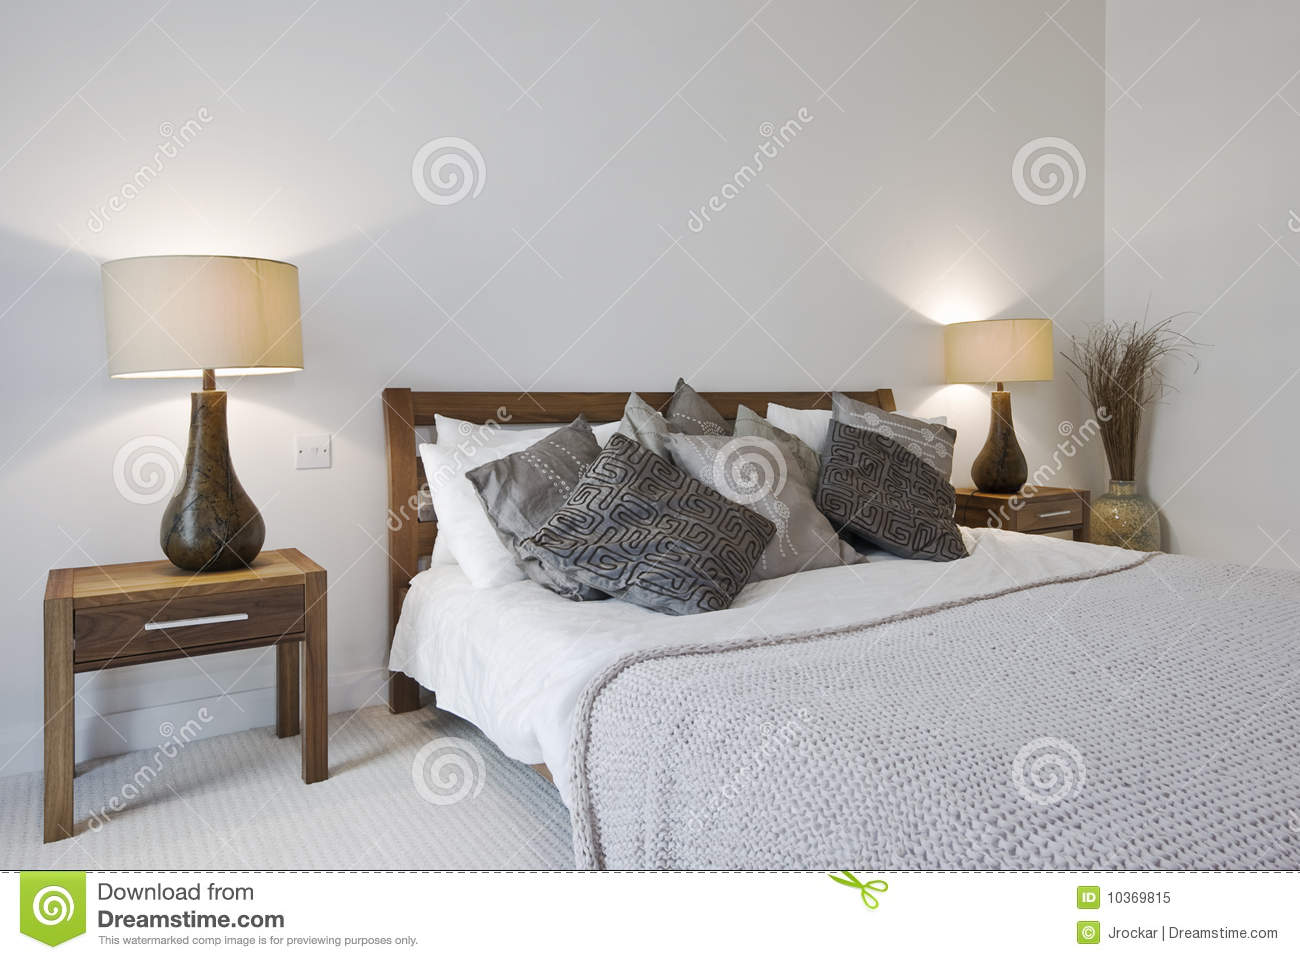 https://thumbs.dreamstime.com/z/camera-da-letto-con-la-base-di-formato-del-re-ed-i-tavolini-da-notte-10369815.jpg